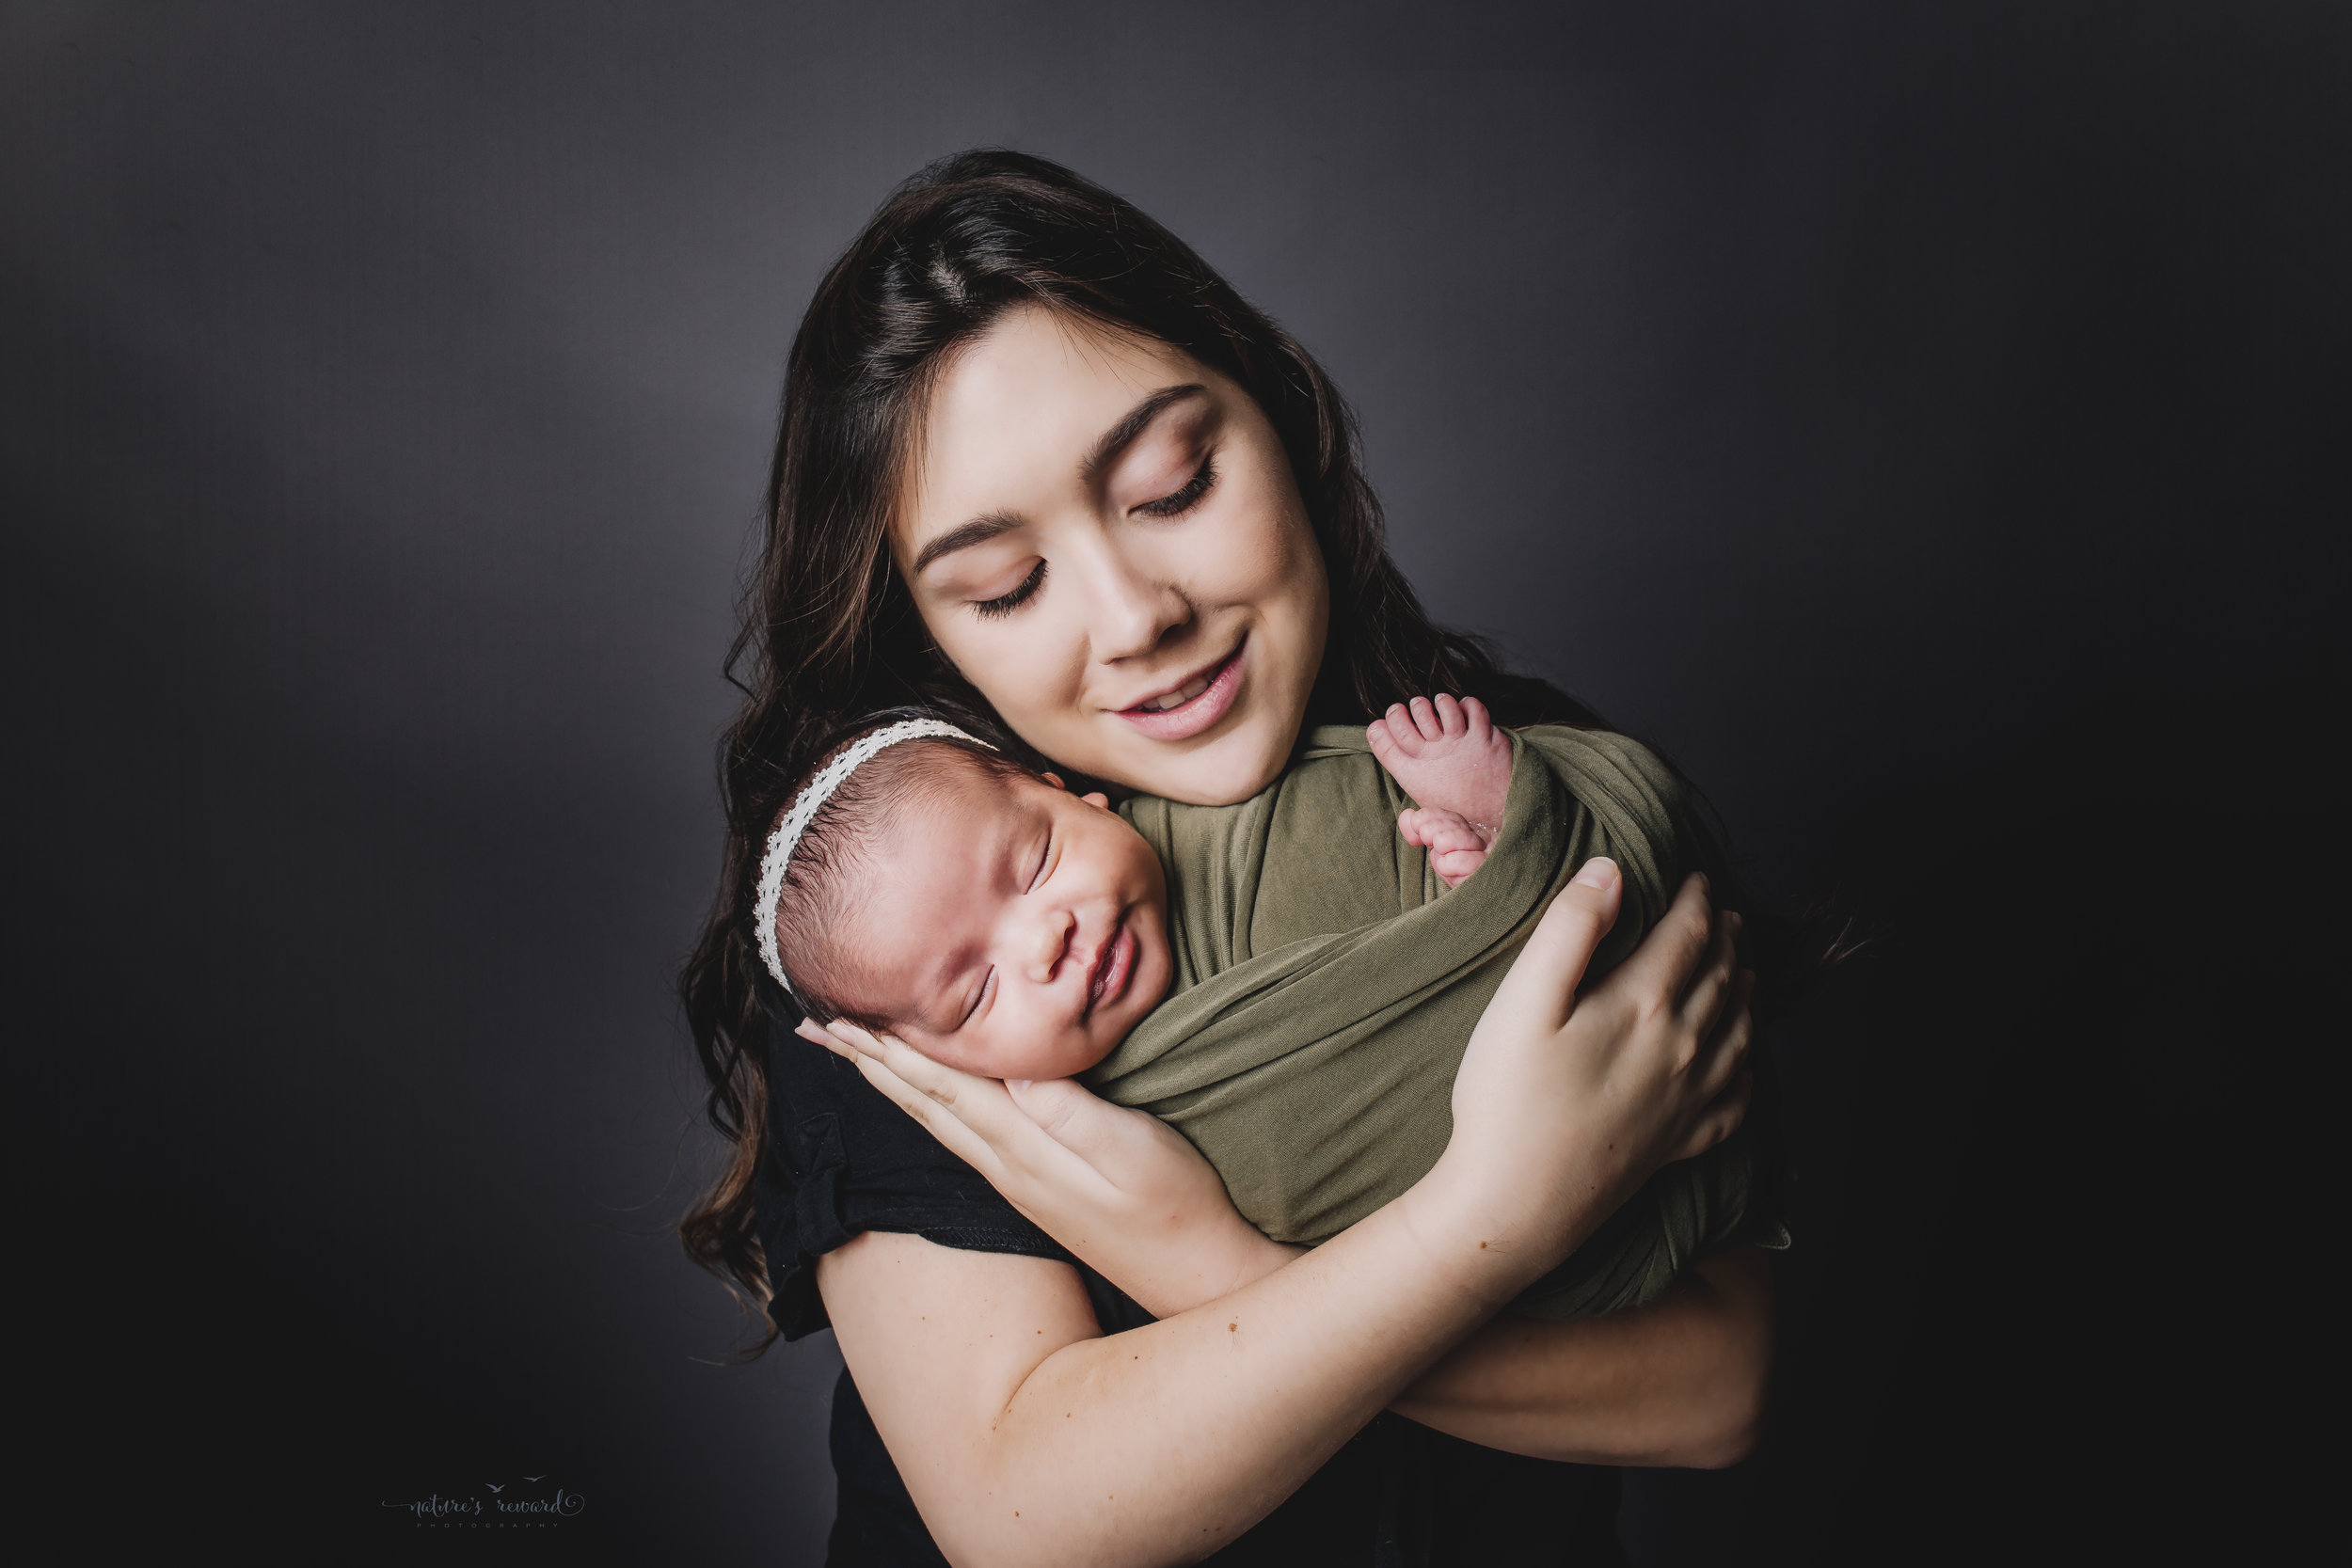 Mom and newborn baby girl portrait by Nature's Reward Photography